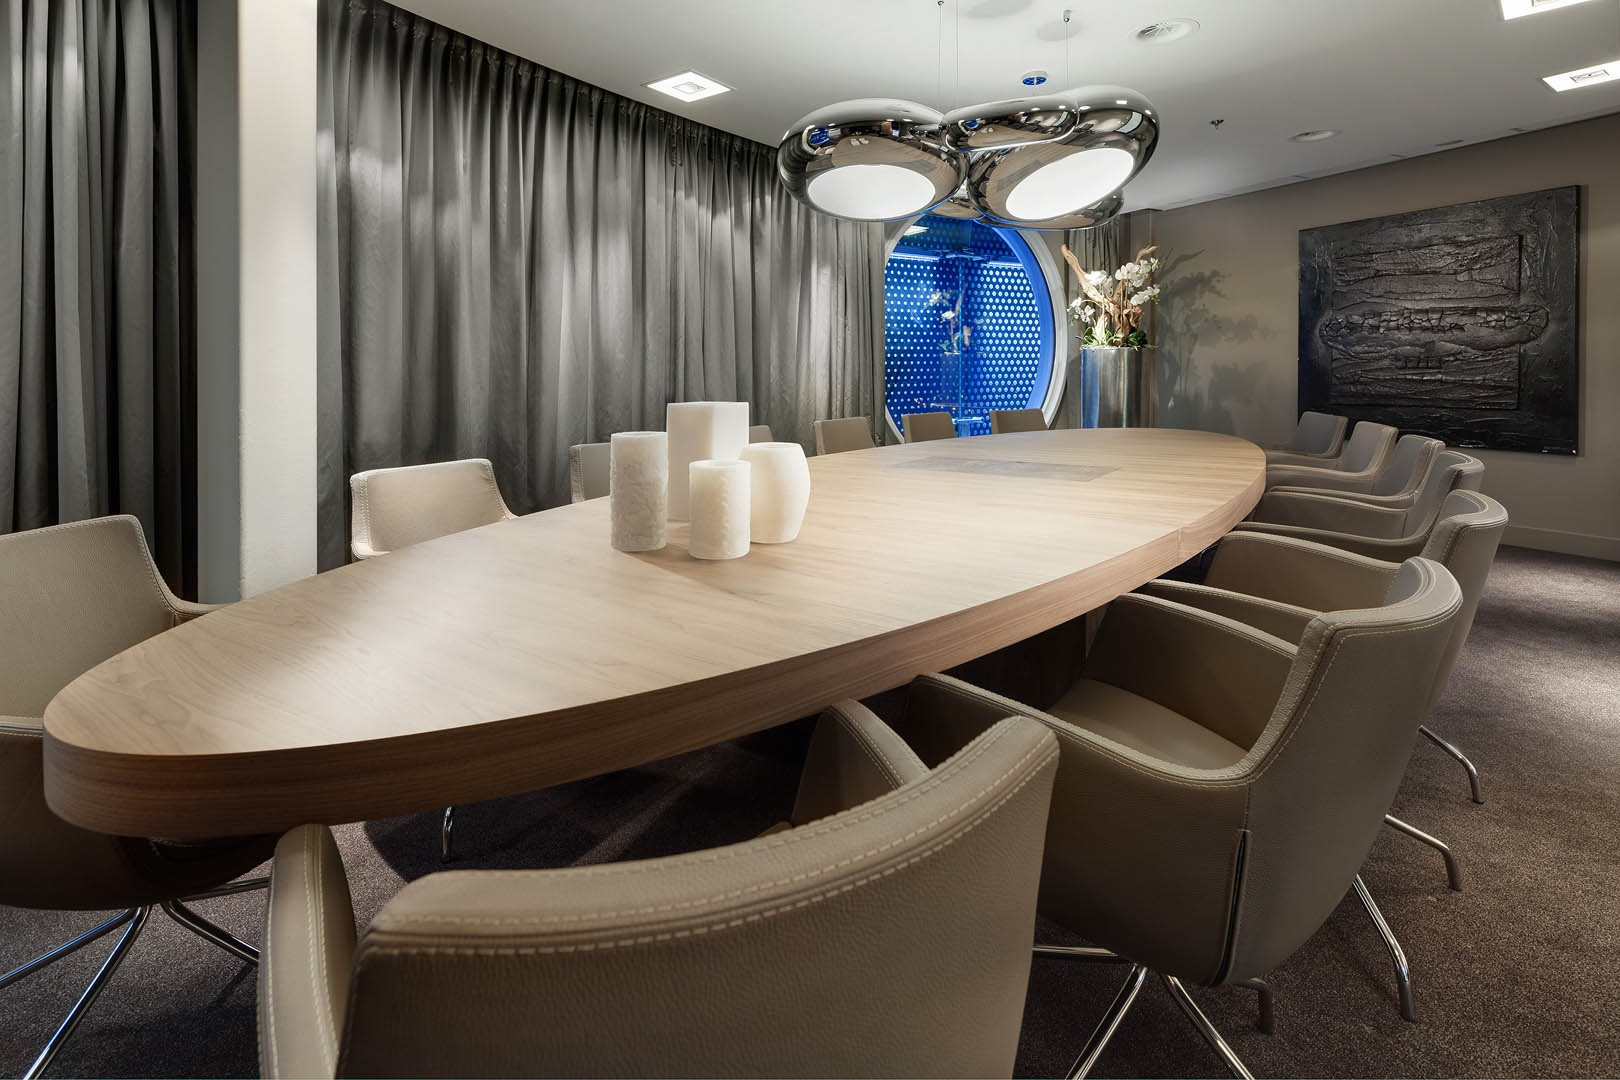 This multi-functional hospitality design comprises a luxurious boardroom design that can also be used as a private dining area.